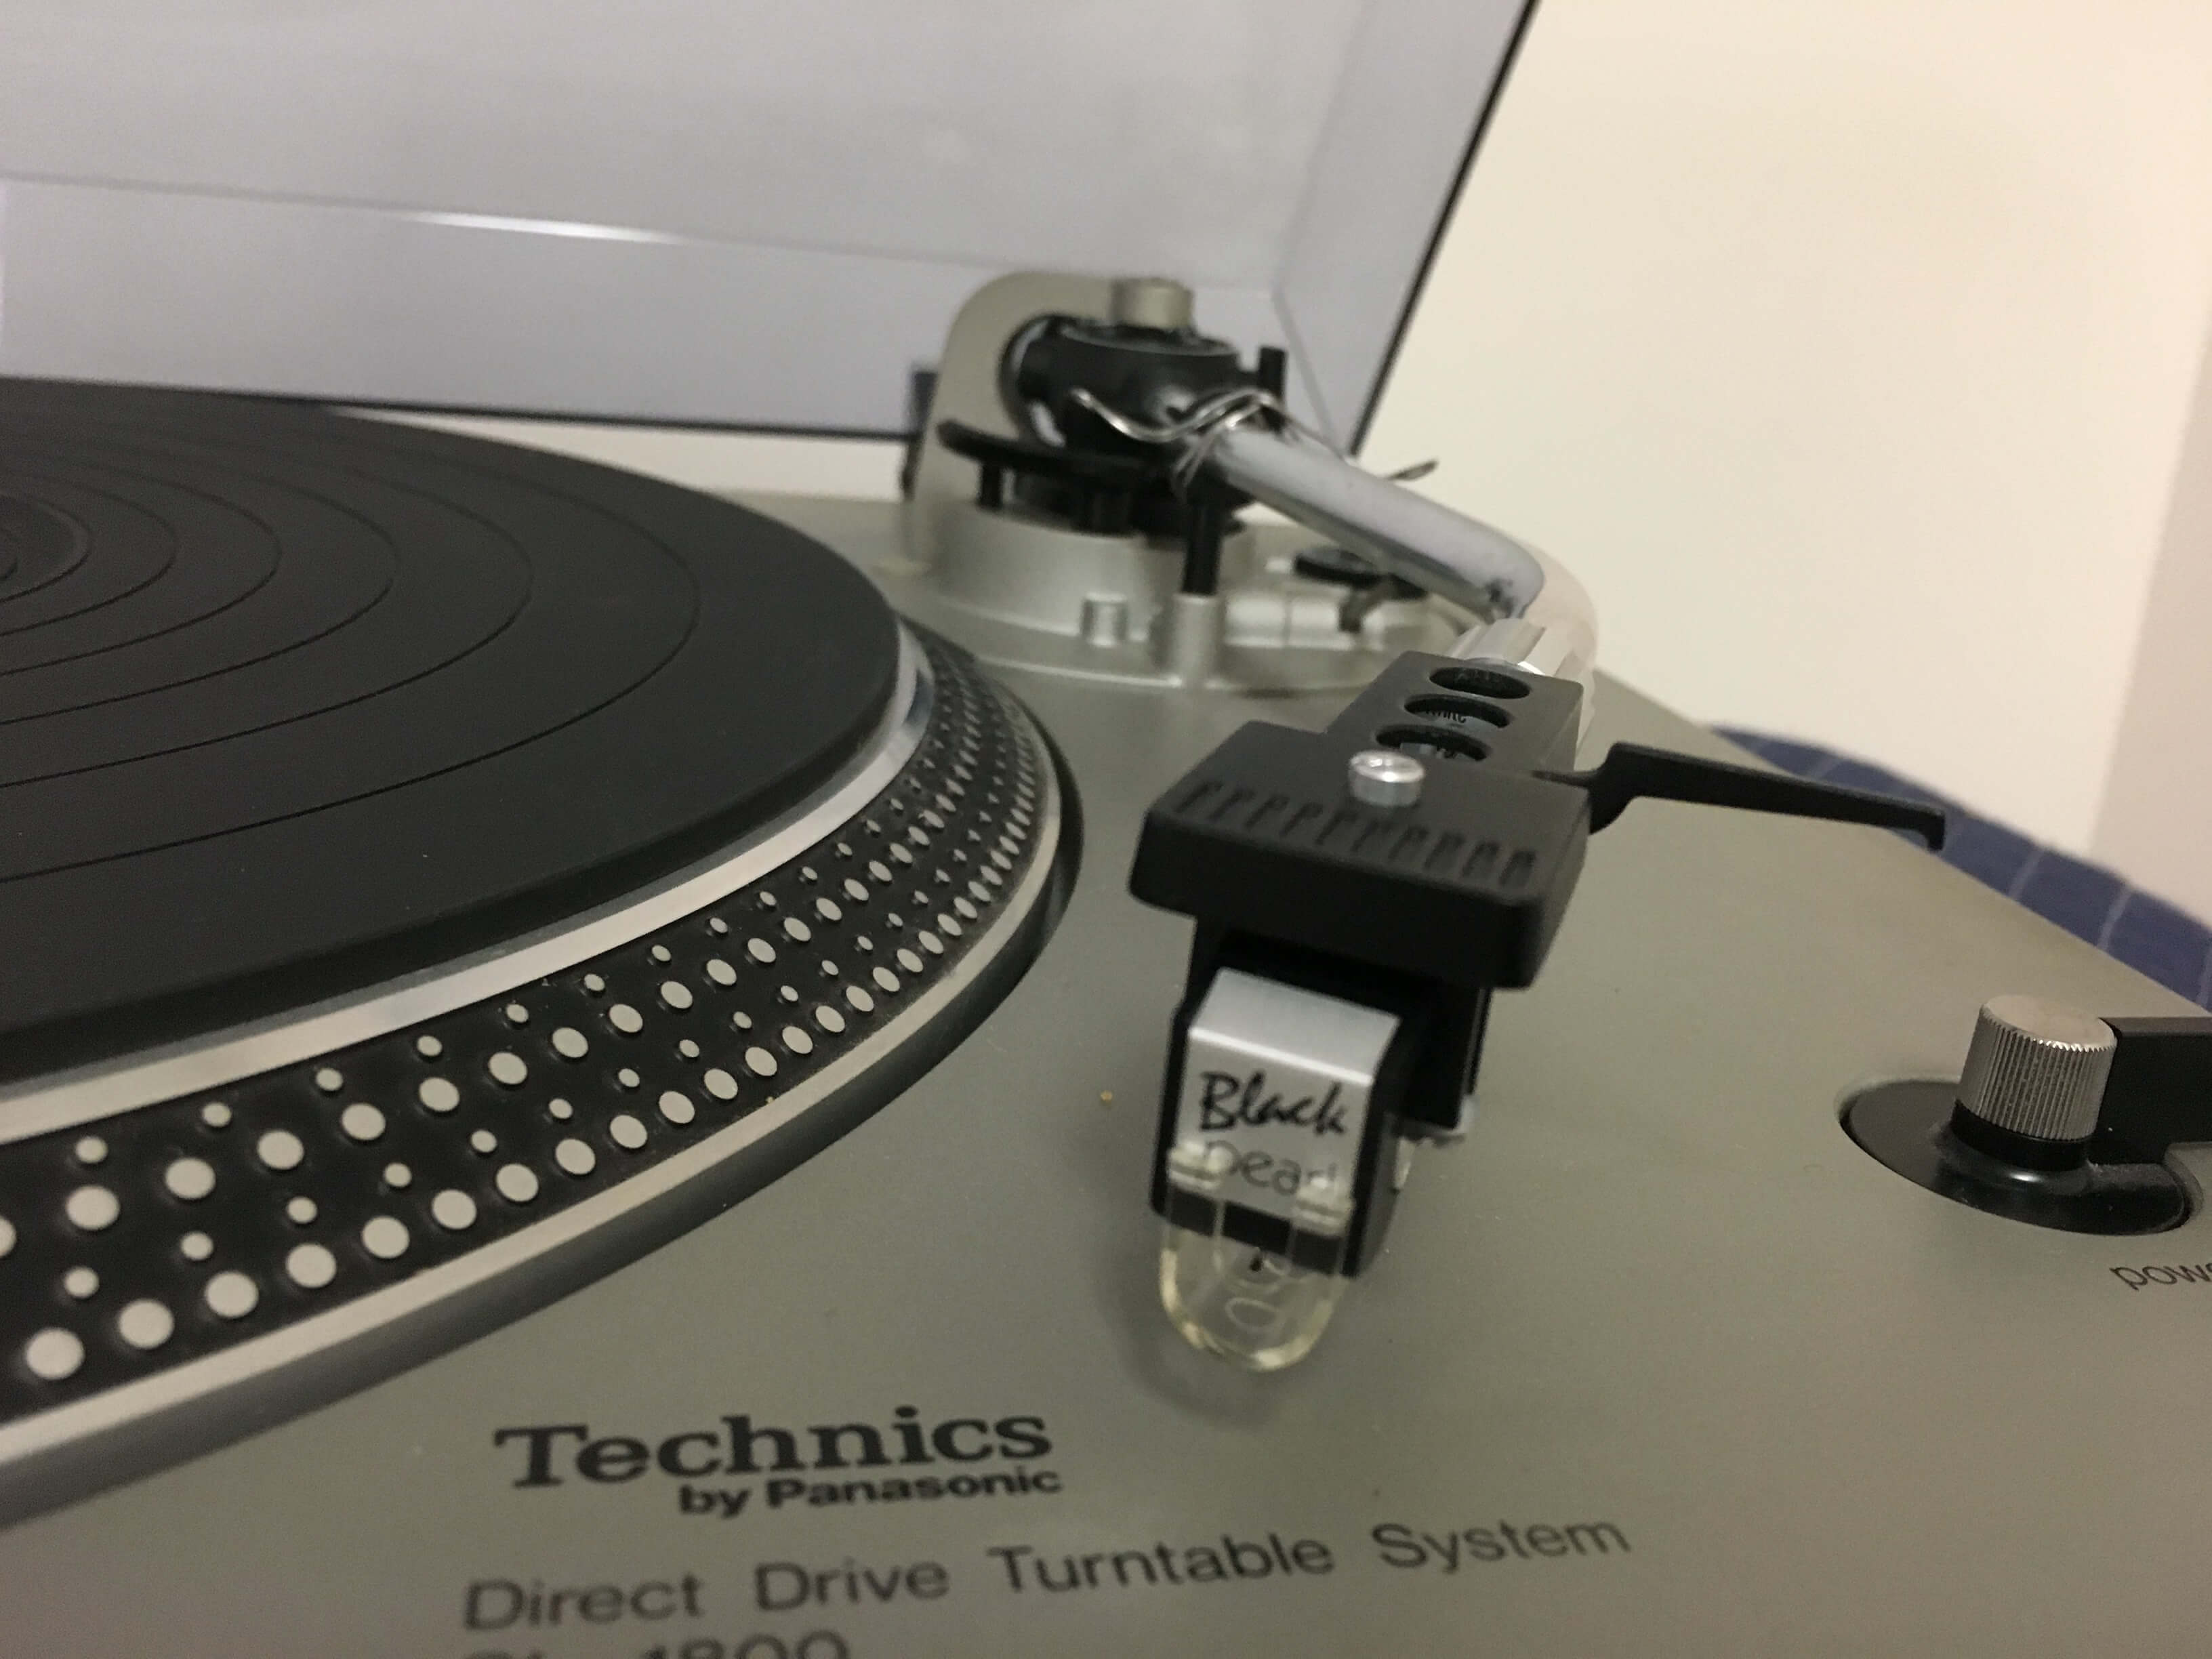 Technics ST-8080 tuner, SU-8080 integrated amplifier & SL1800 turntable set